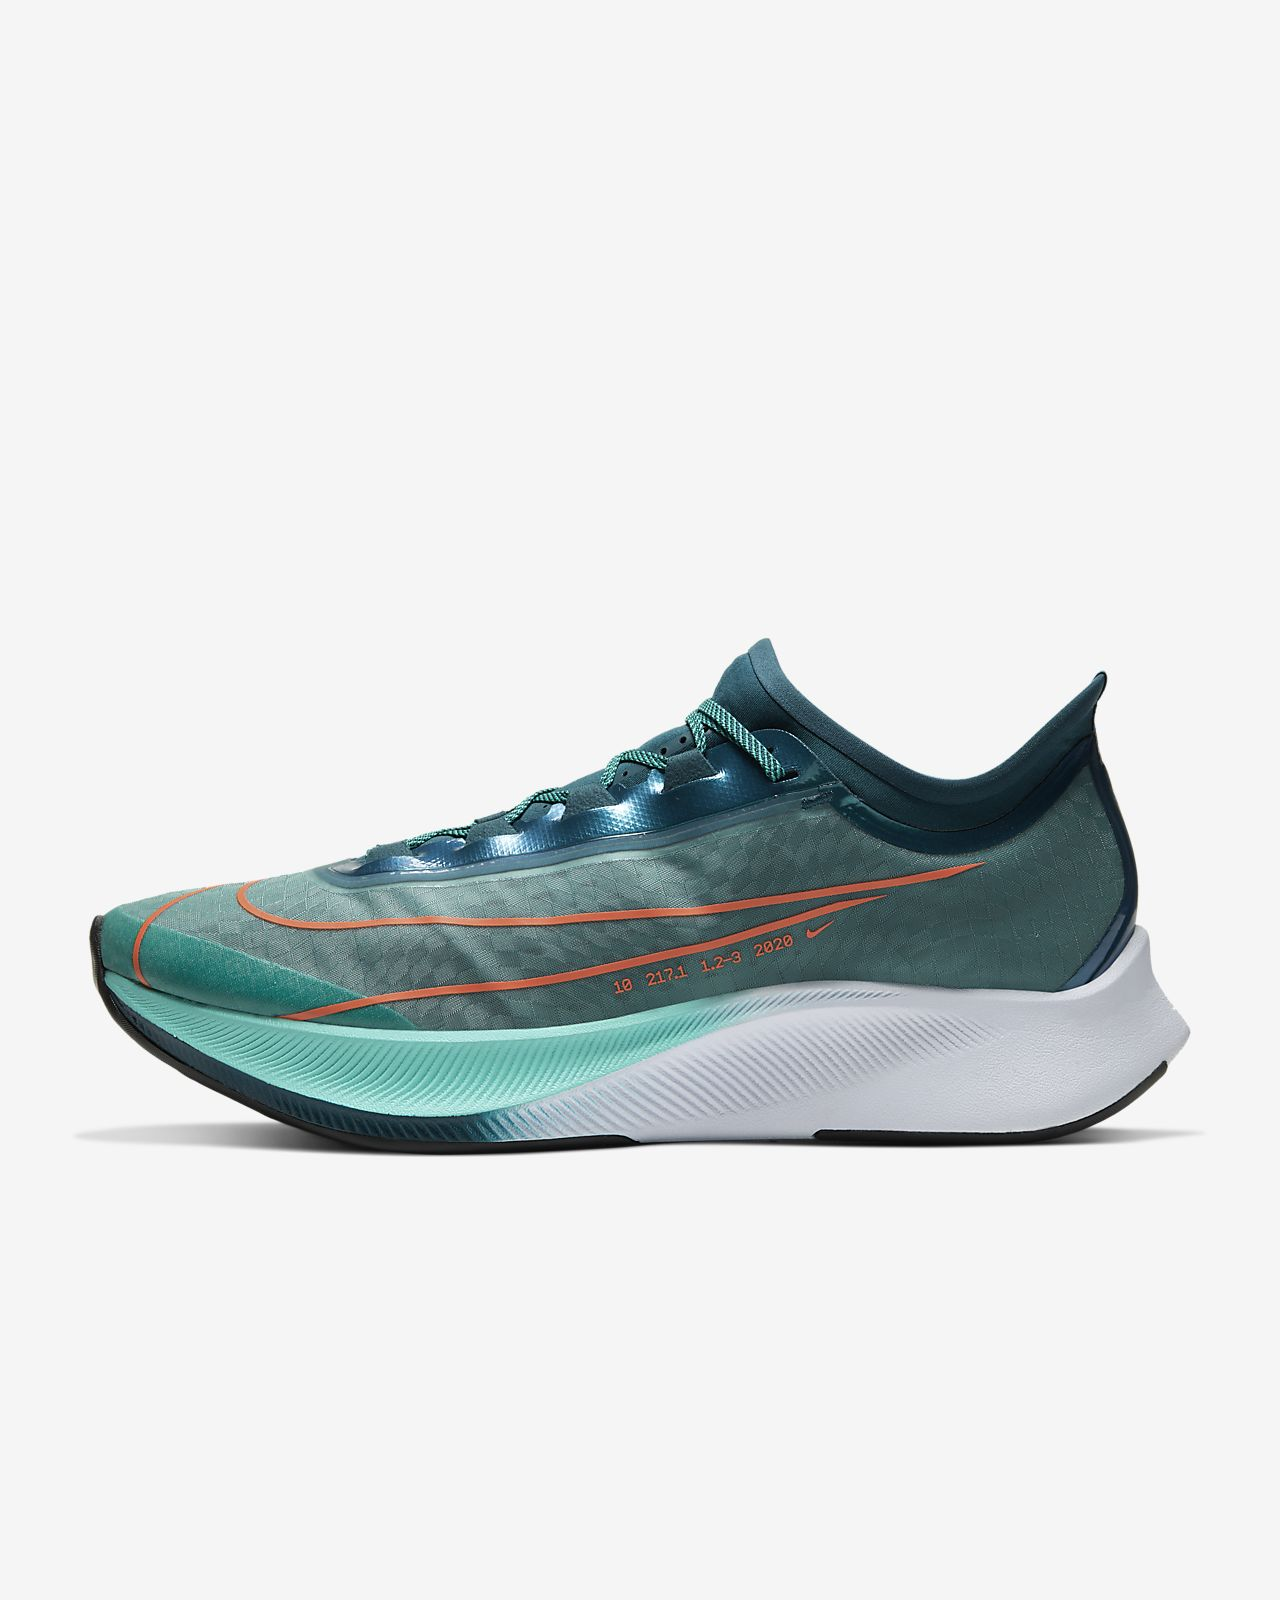 Nike Zoom Fly 3 Premium Men's Running Shoe